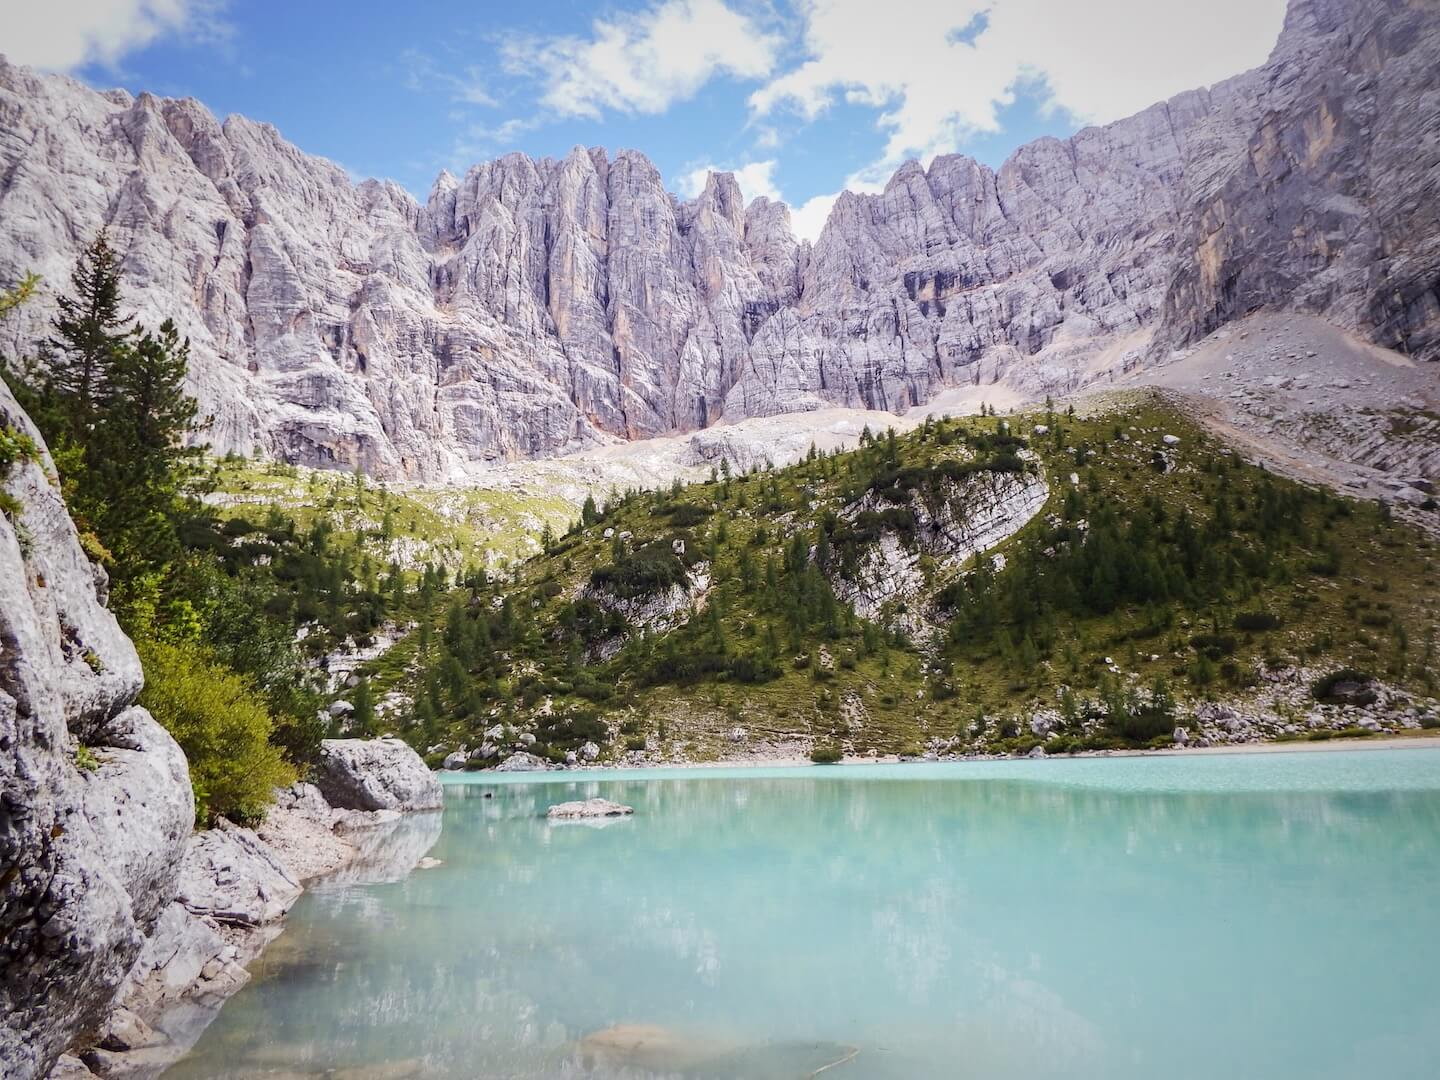 Best Dolomites Hiking Trails - Lago di Sorapis